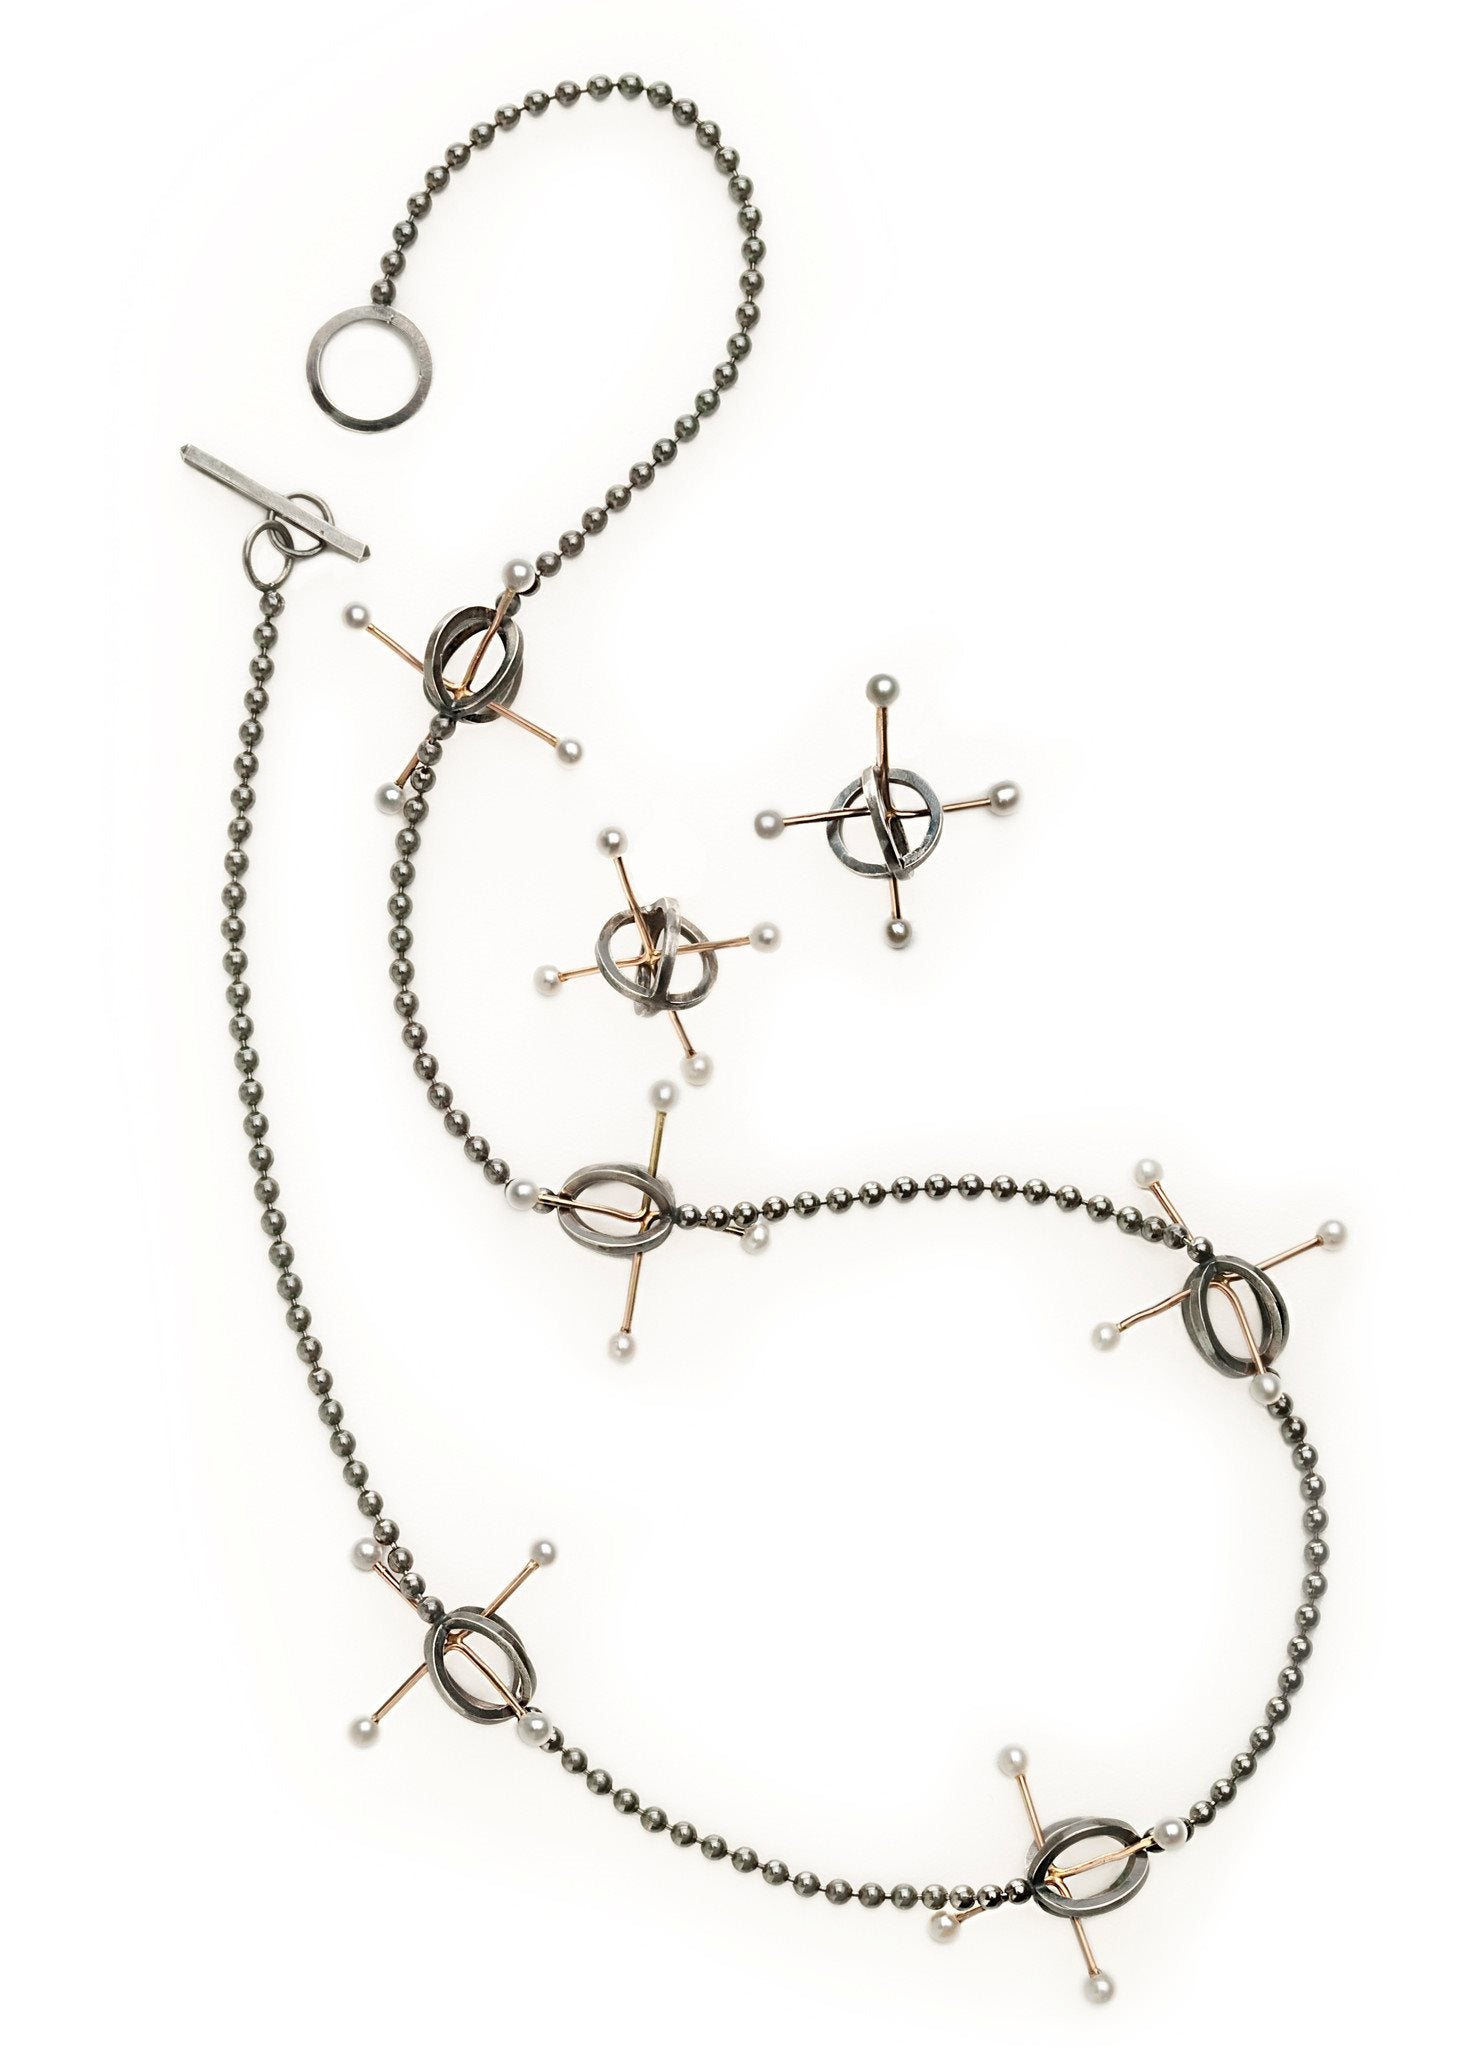 Quark Necklace in Sterling Silver, 14k Gold, Pearls